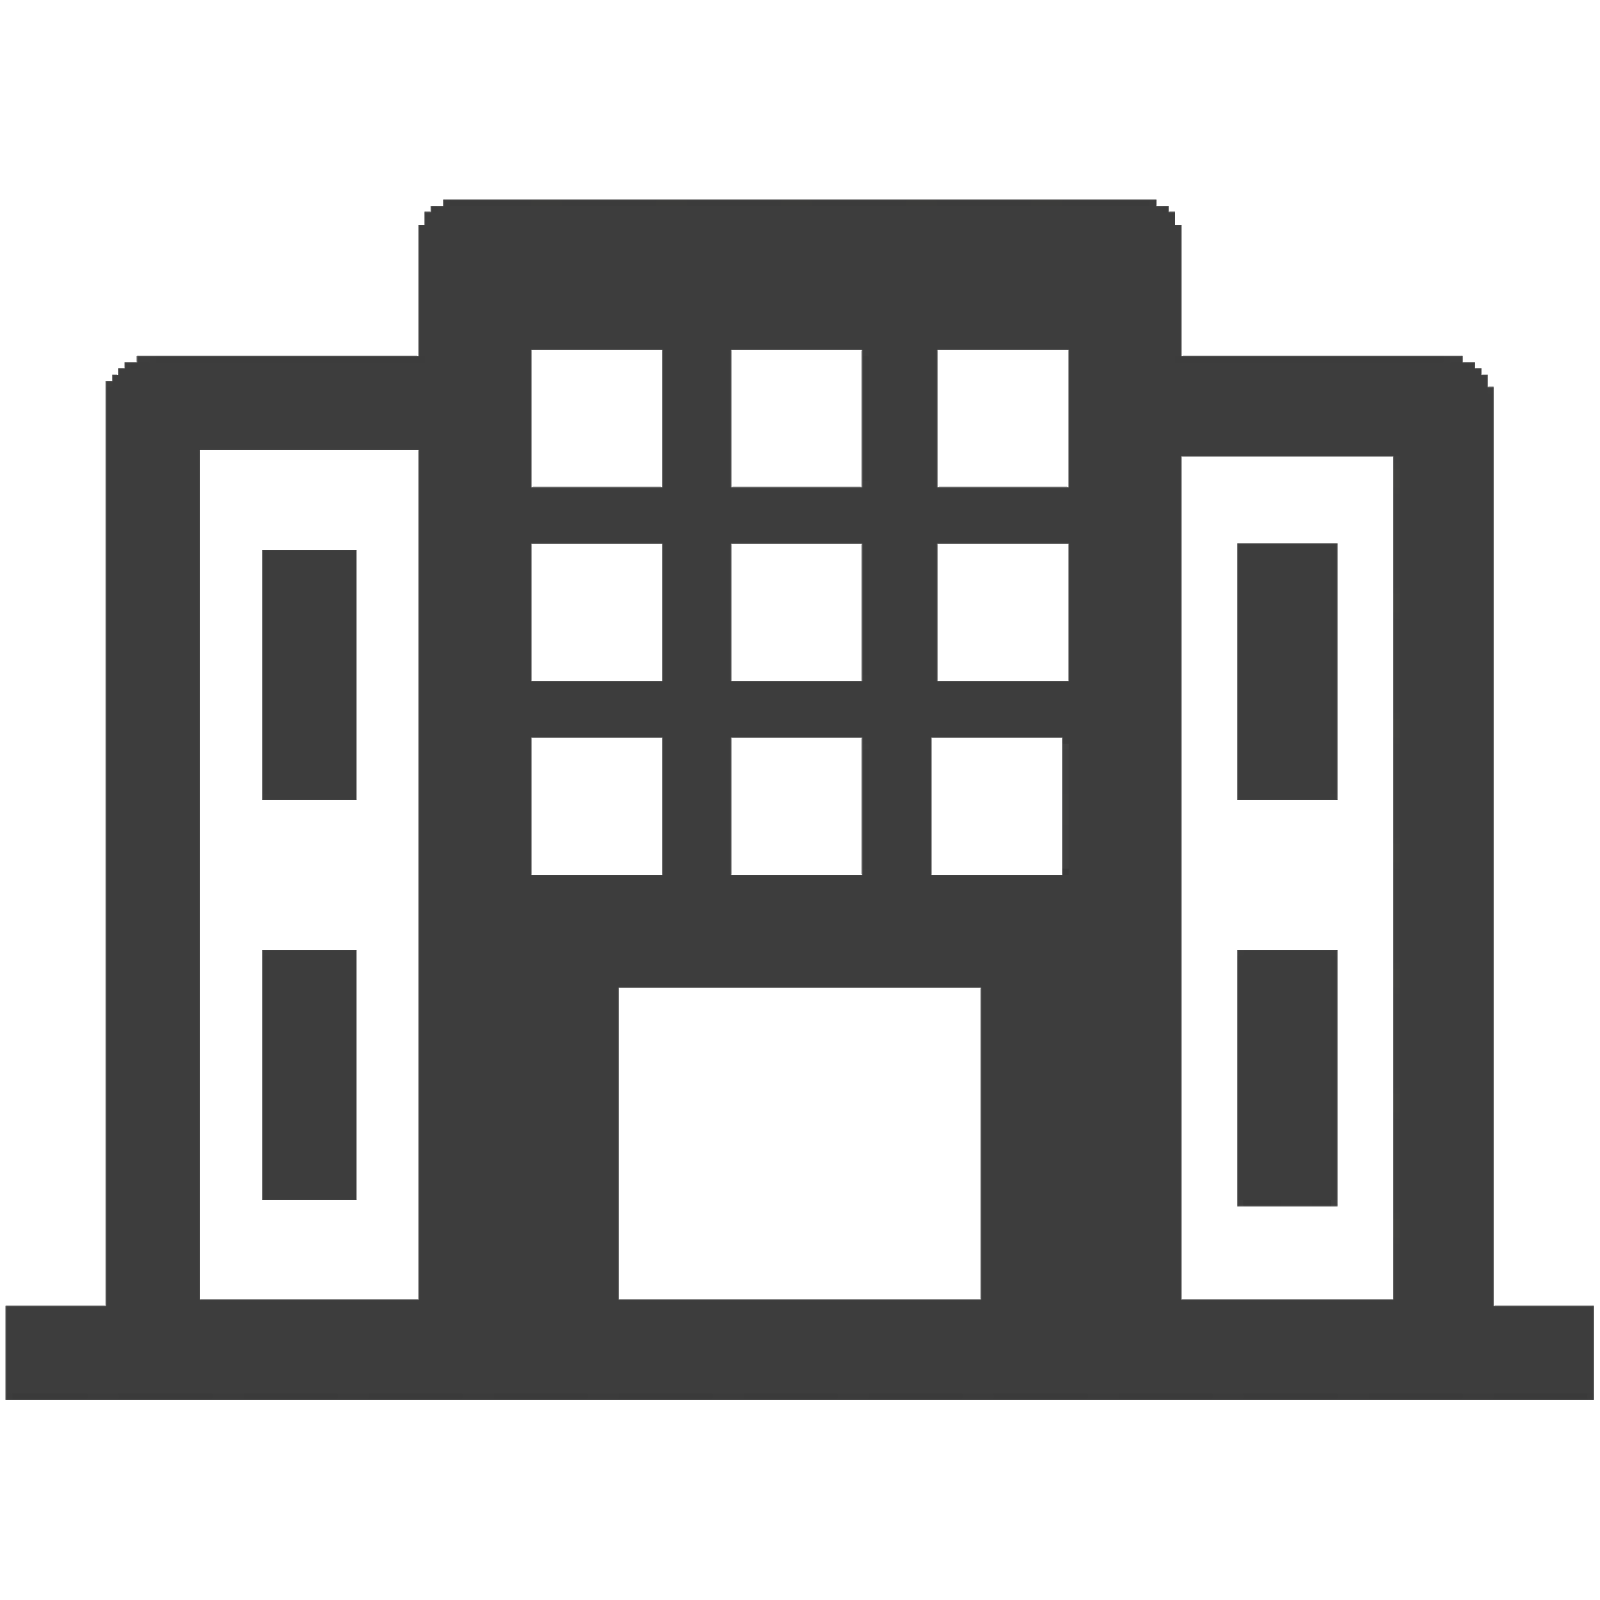 Building, company, office icon in png file.